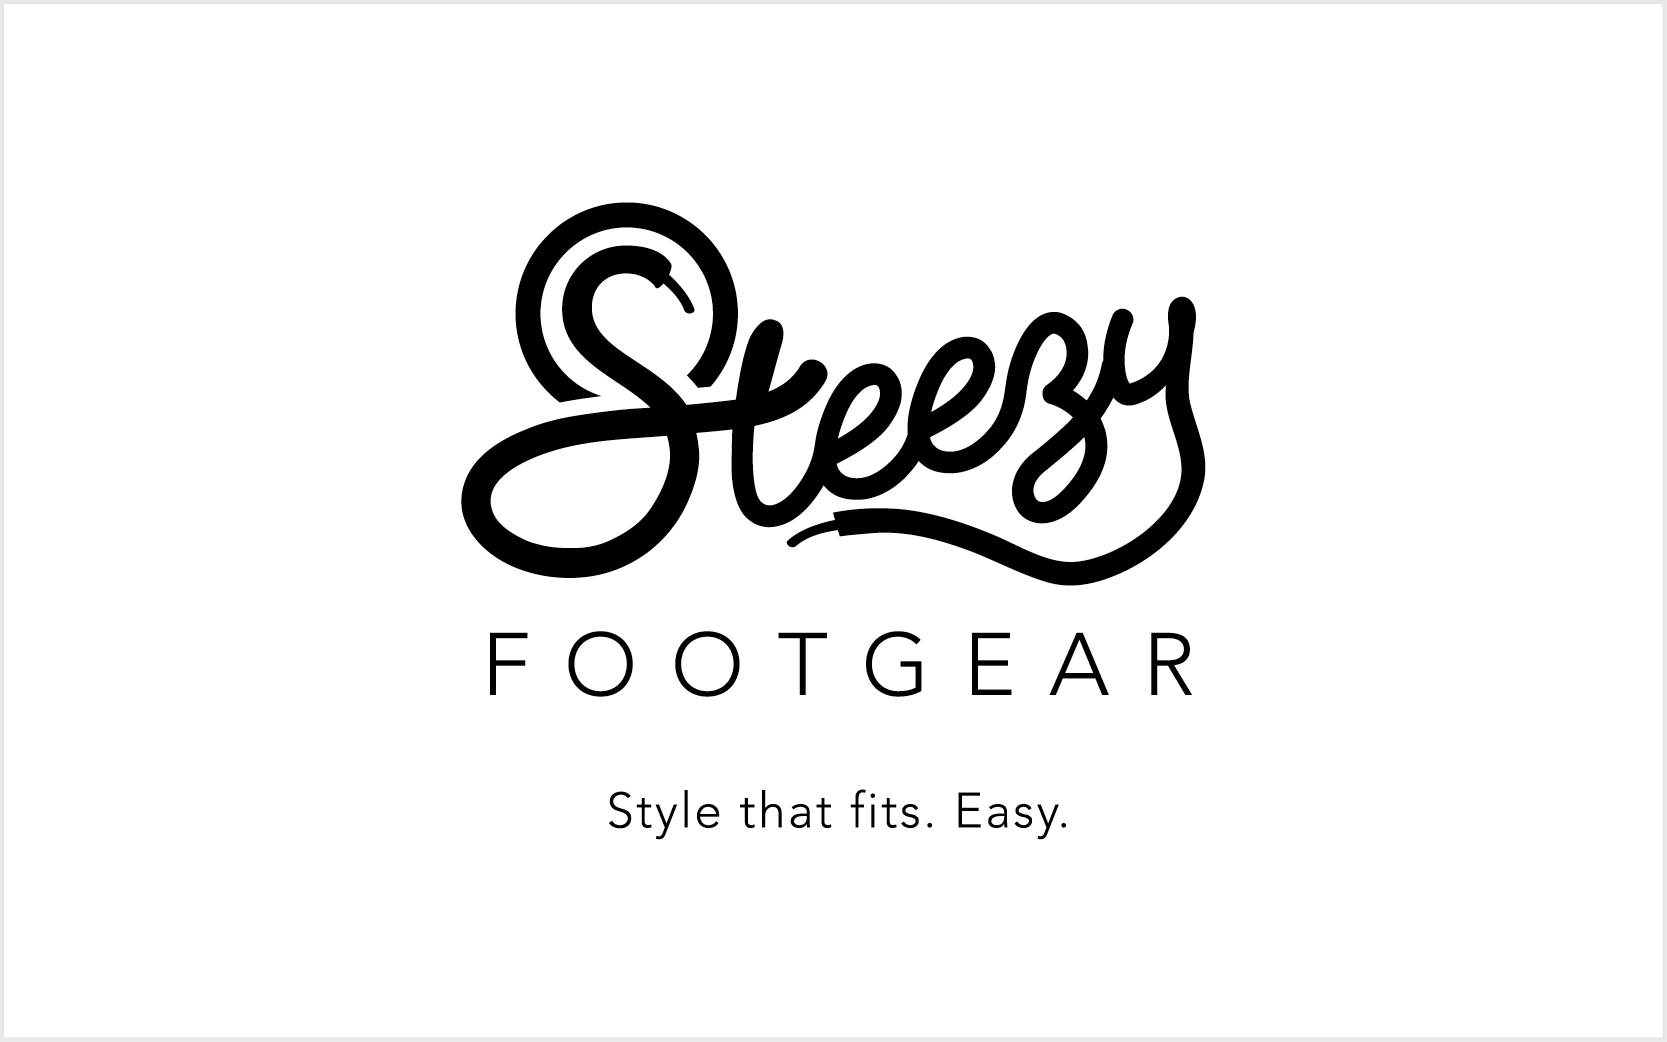 Steezey Footgear Logo